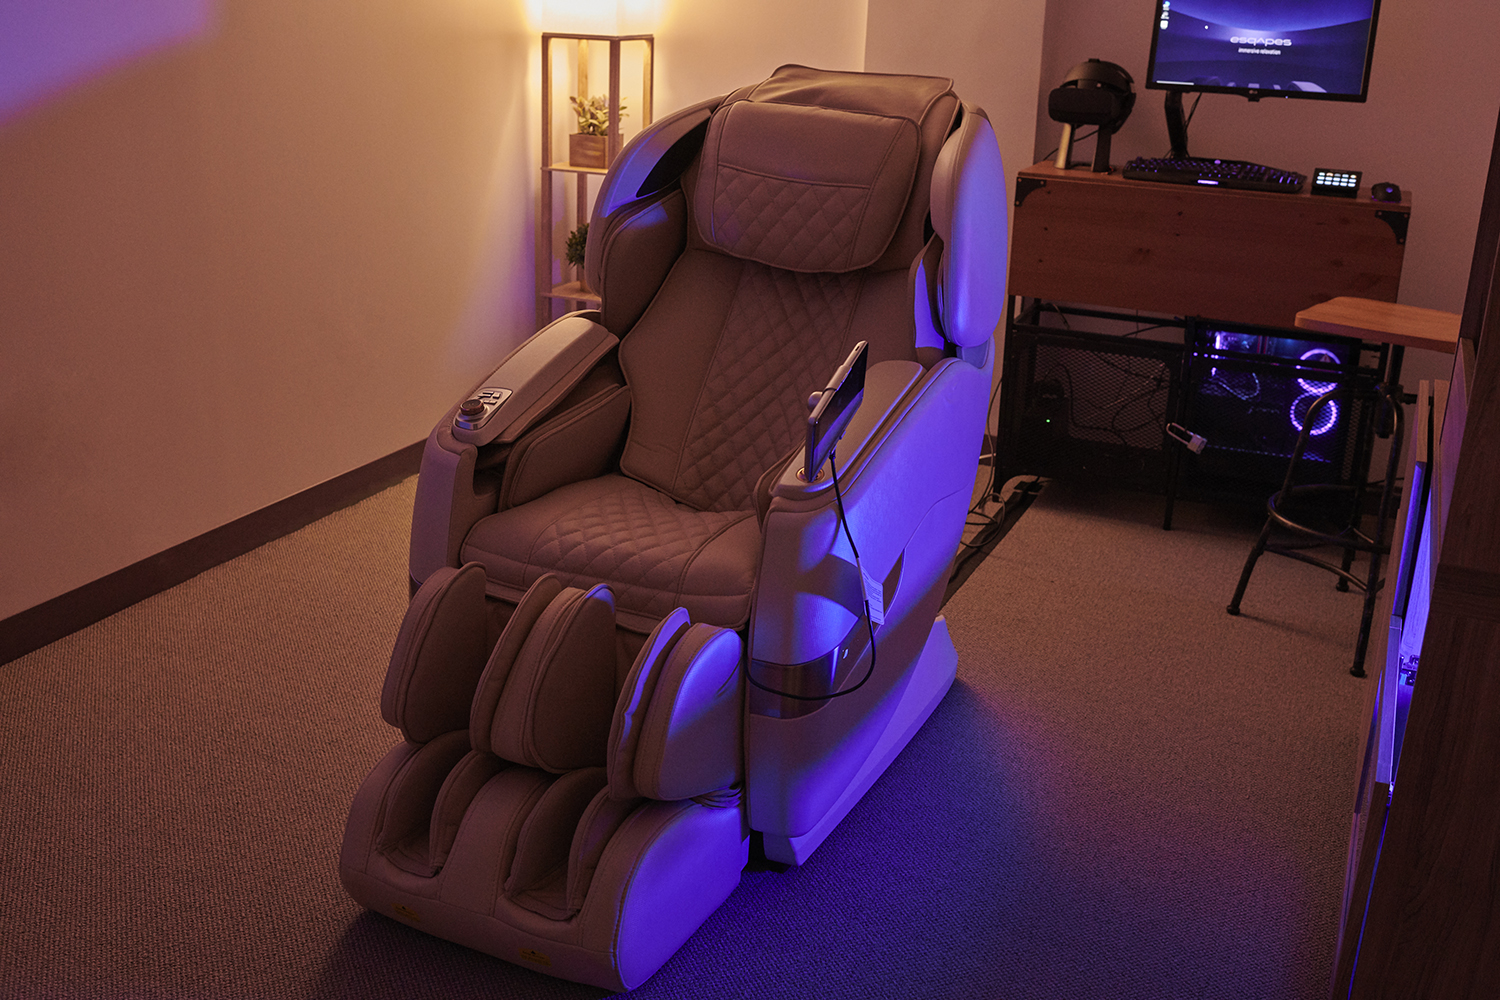 Guests enjoy programmed, automated massages during their virtual reality experience.